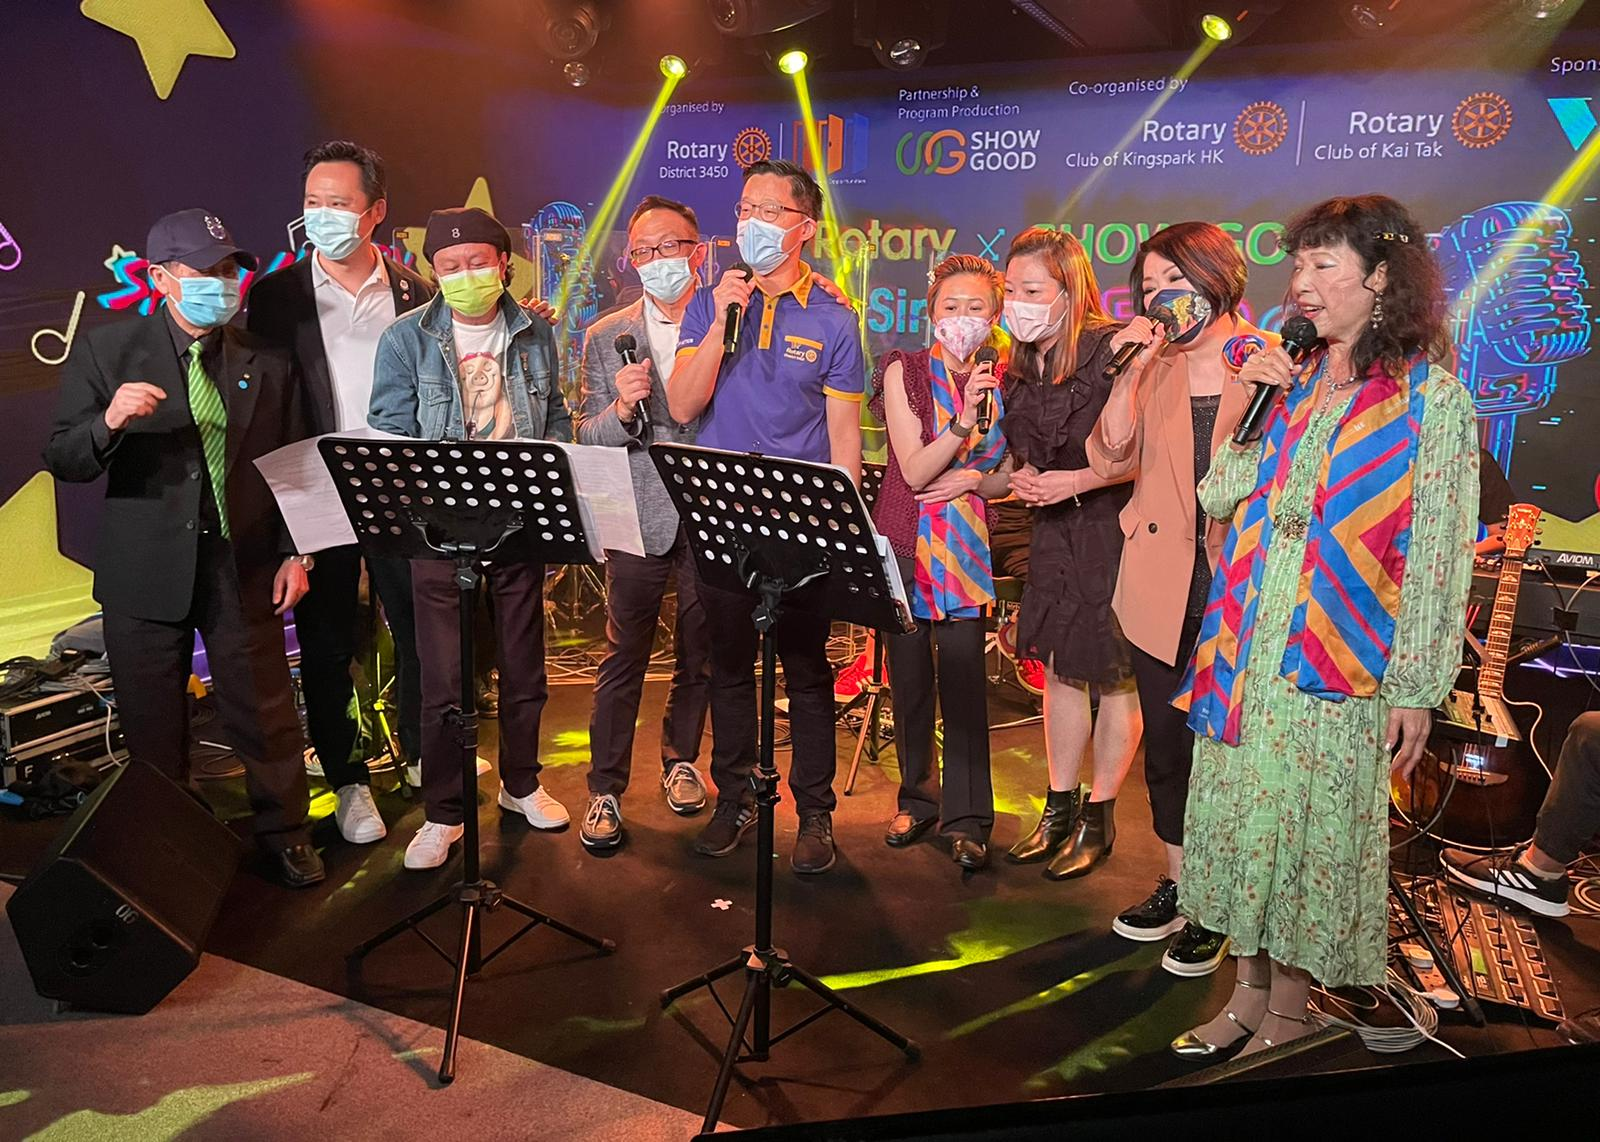 Rotary District 3450 Sing for Fund Online Concert 2021